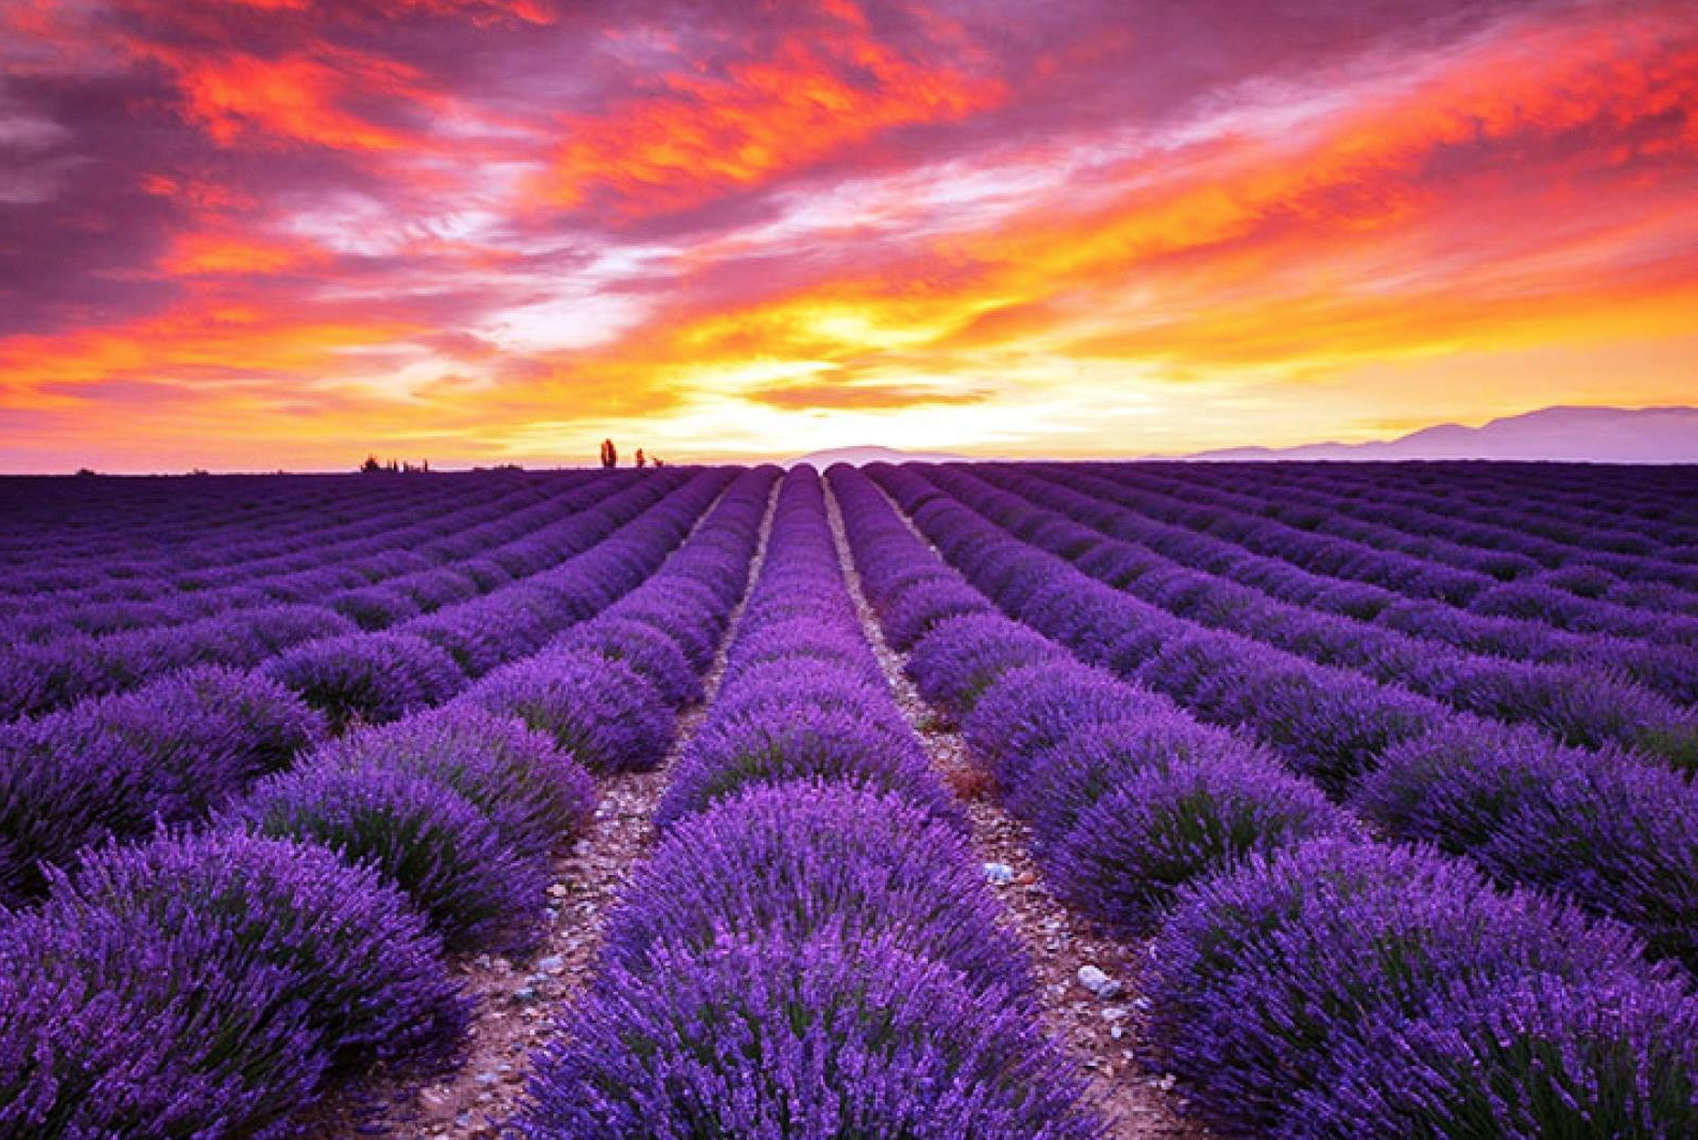 Fields of Lavender | The Journey Continues